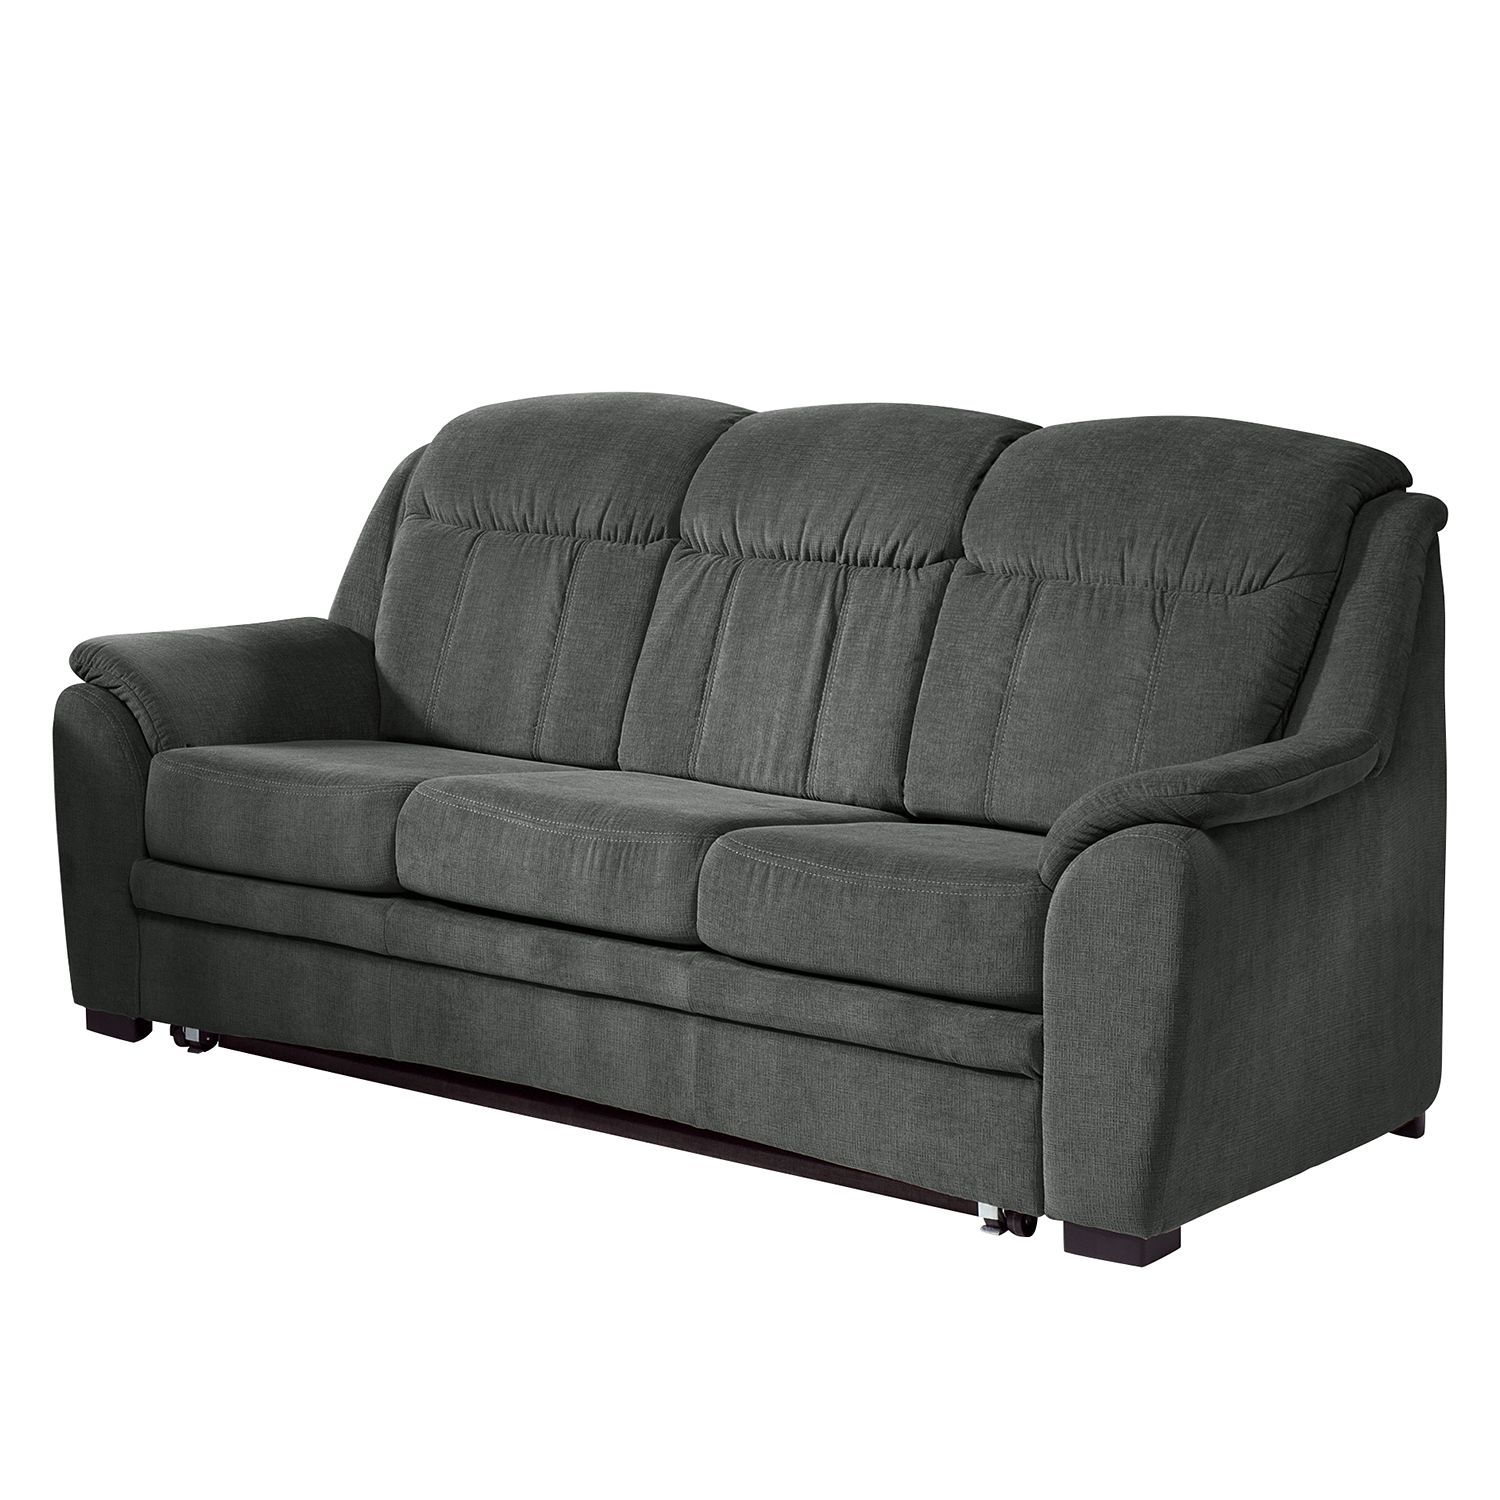 sofa sitzer mit schlaffunktion g nstig kaufen. Black Bedroom Furniture Sets. Home Design Ideas